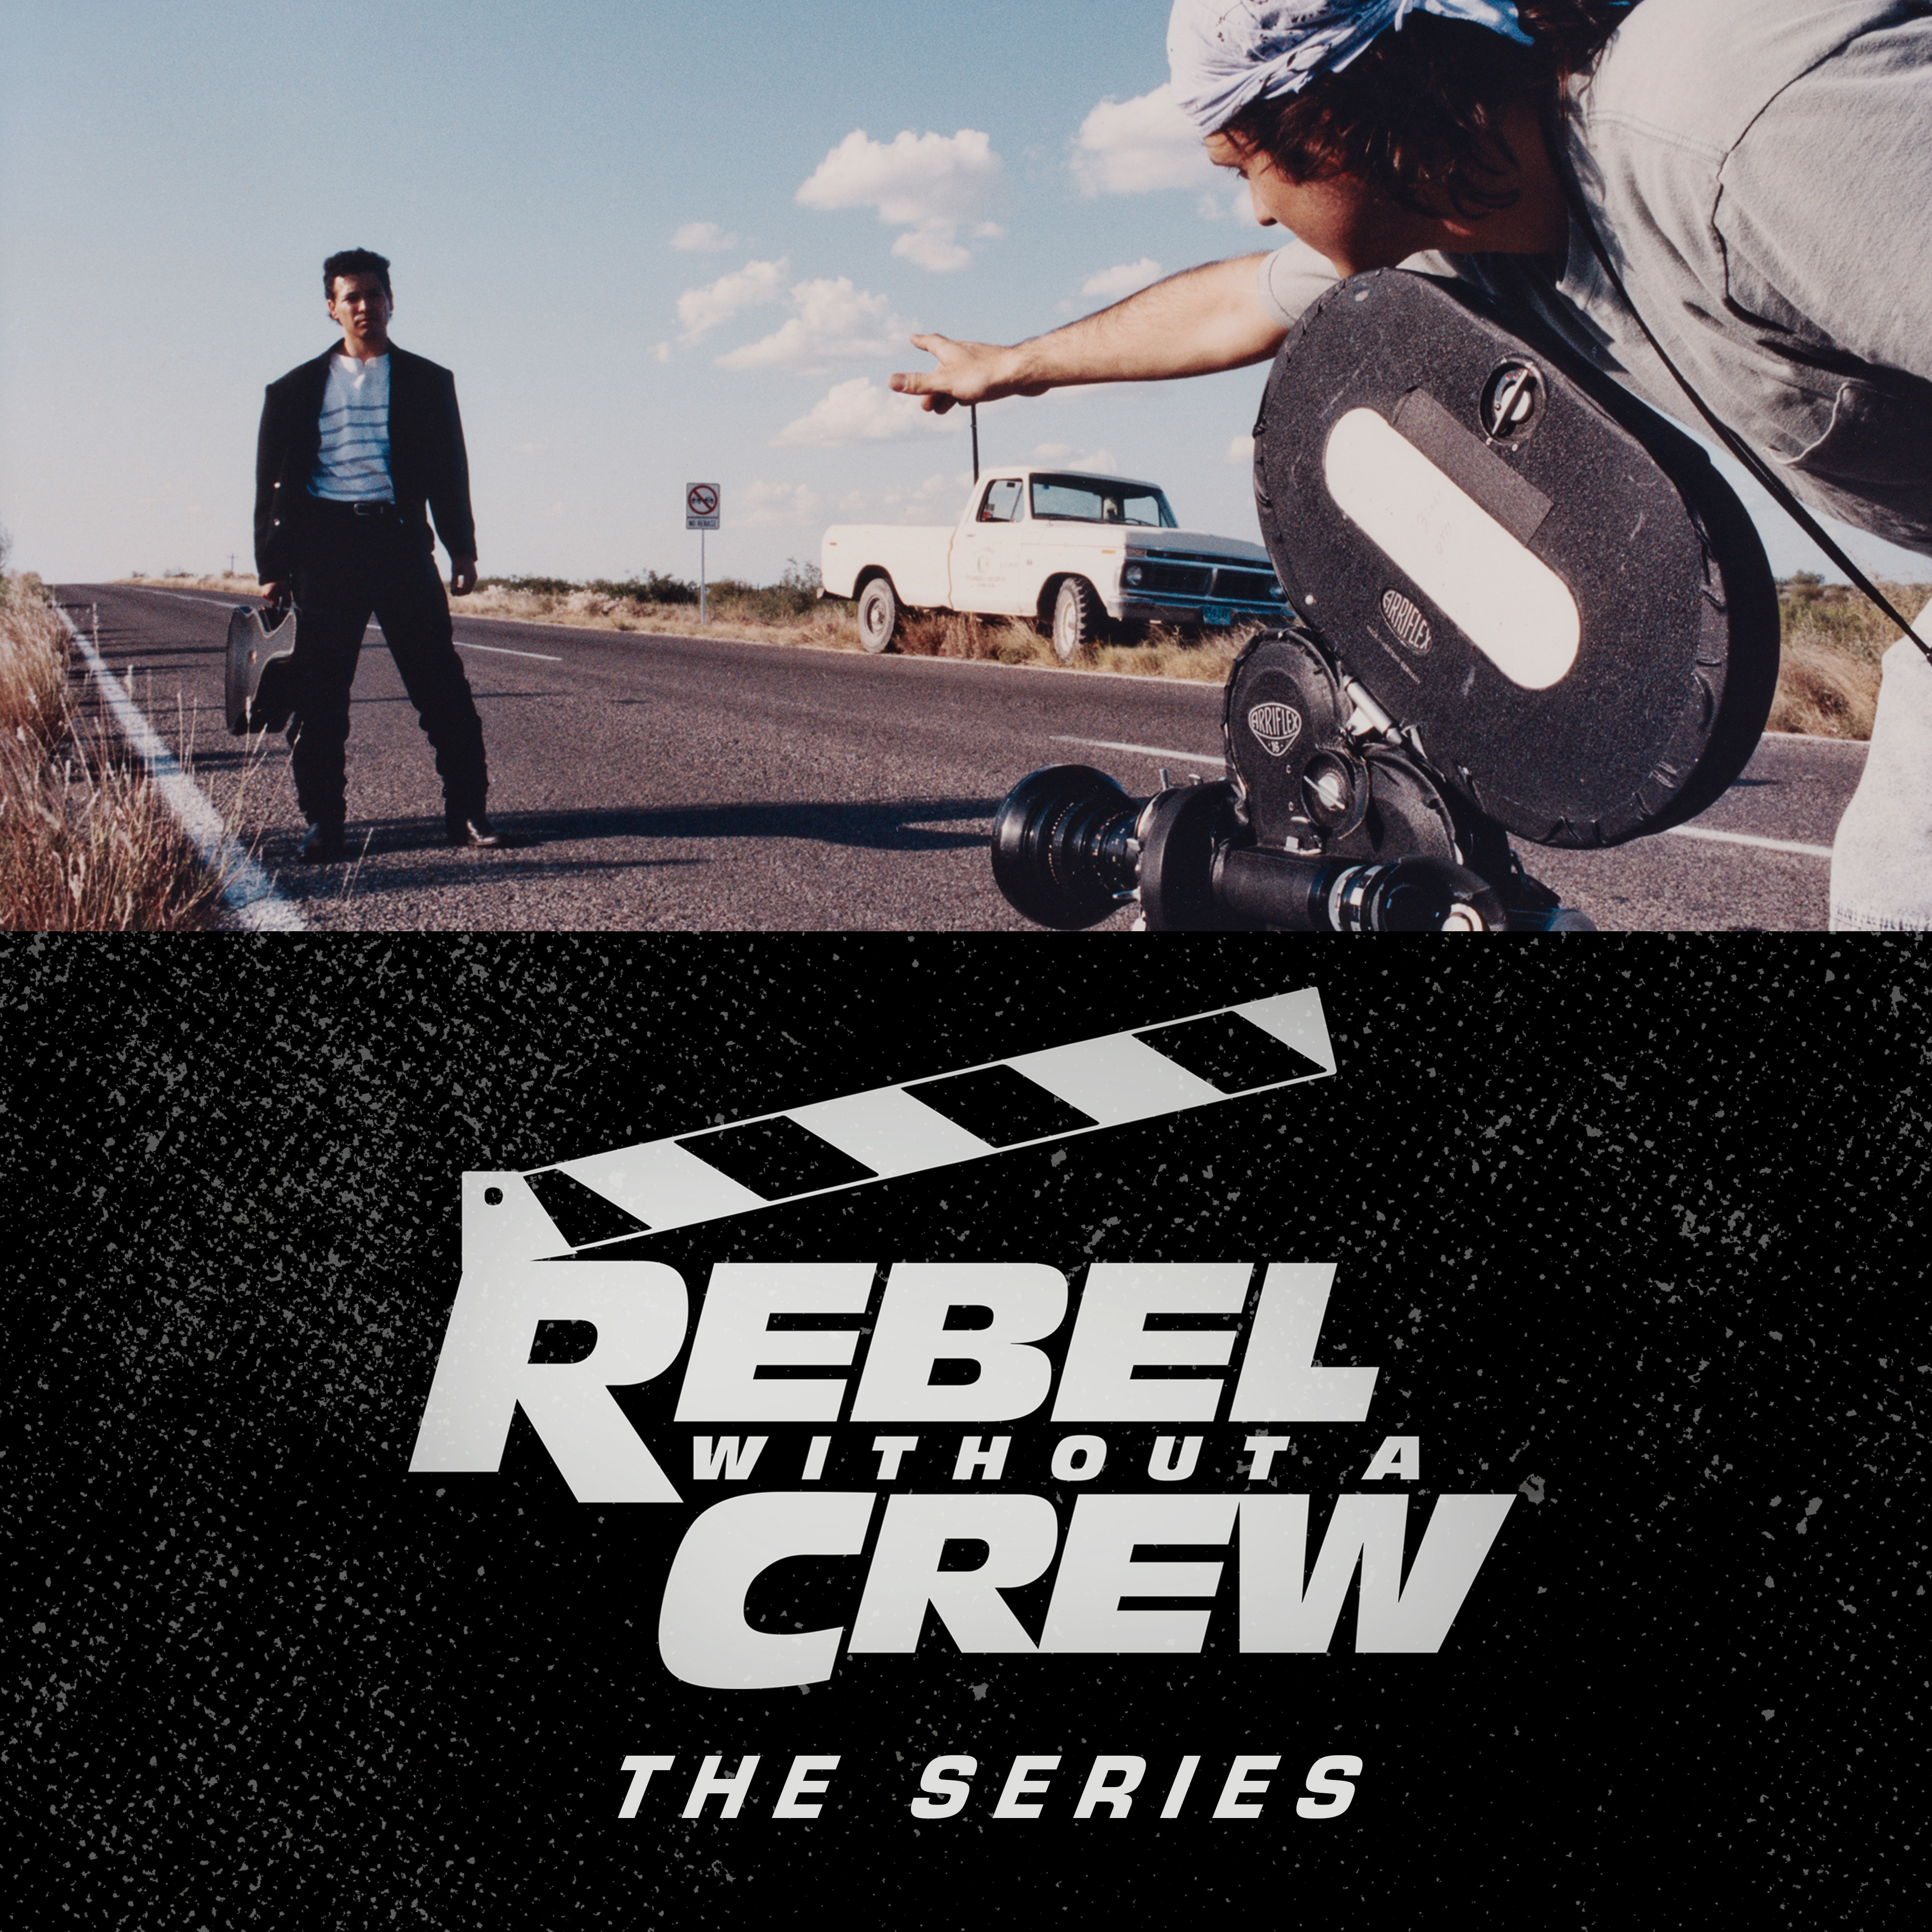 Rebel Without a Crew official